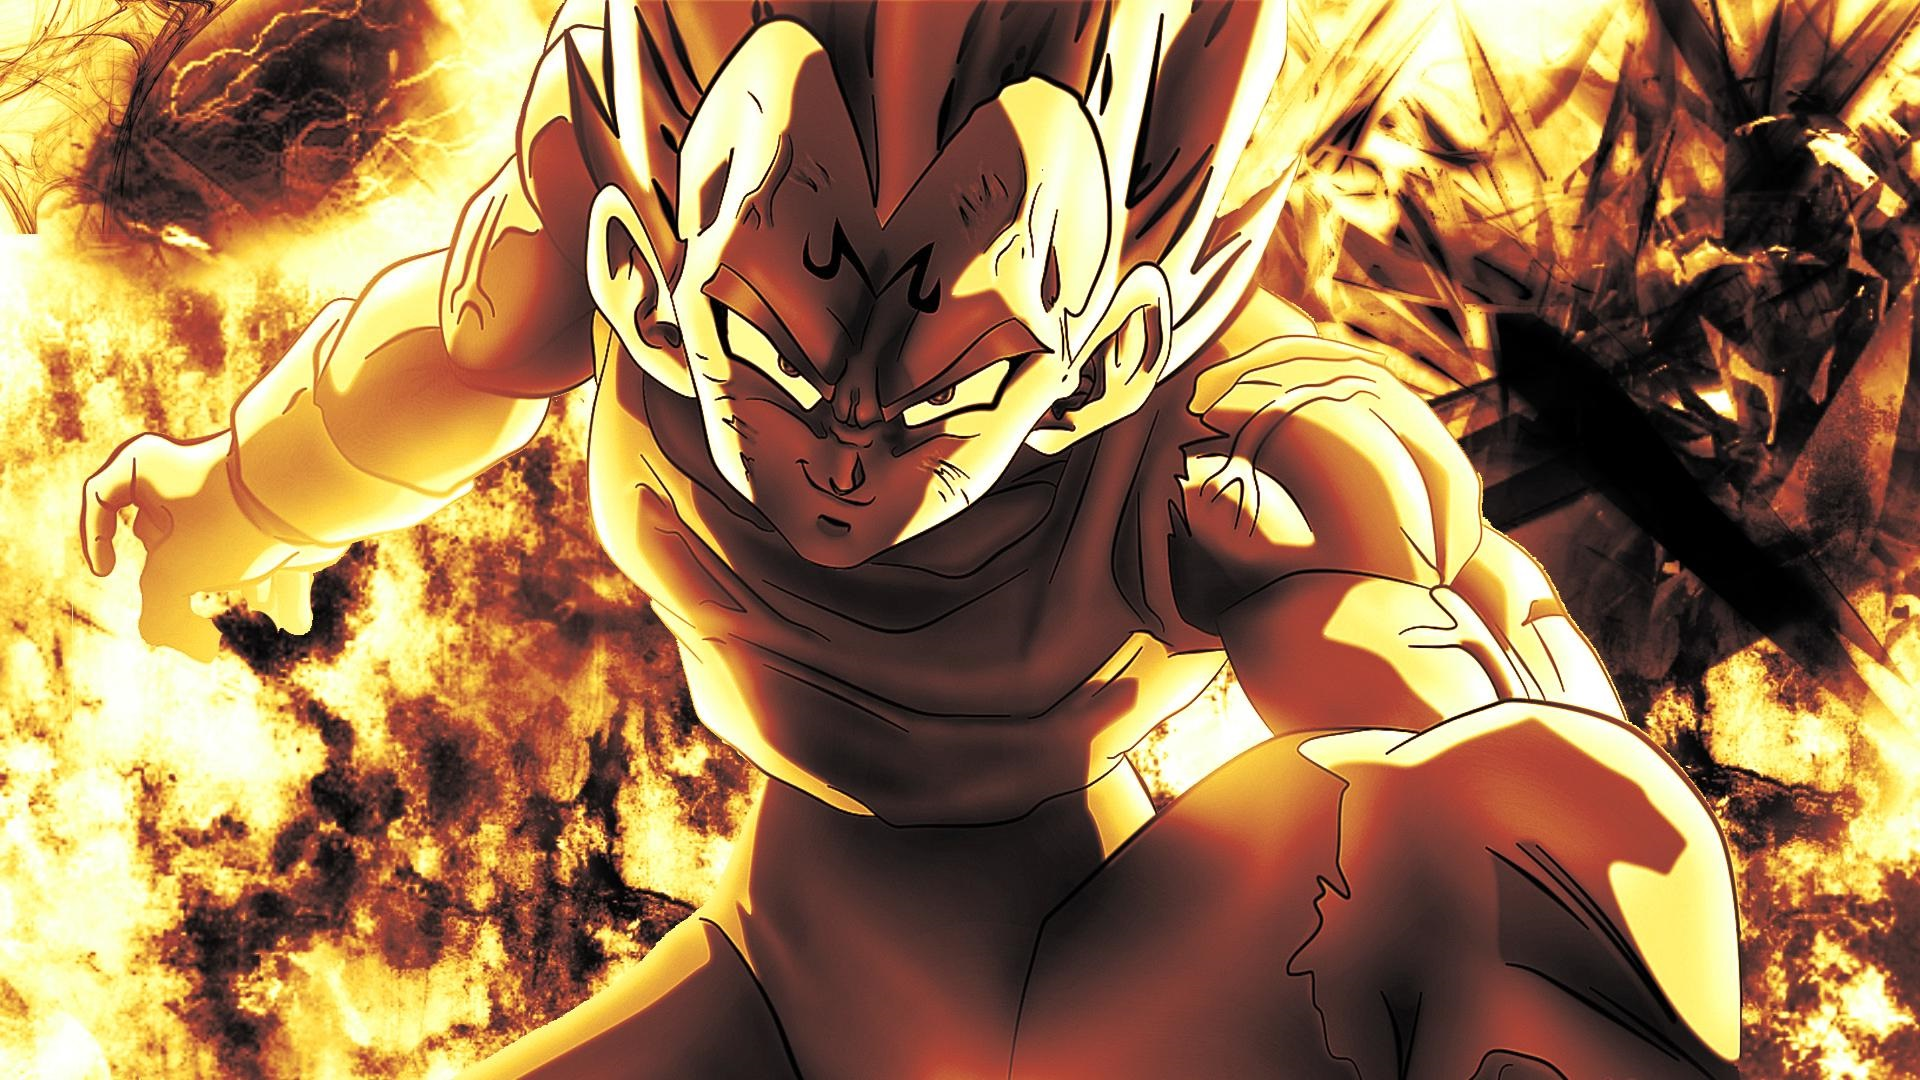 Pics Photos Majin Vegeta Wallpaper Goku Babidi Tv 1920x1080